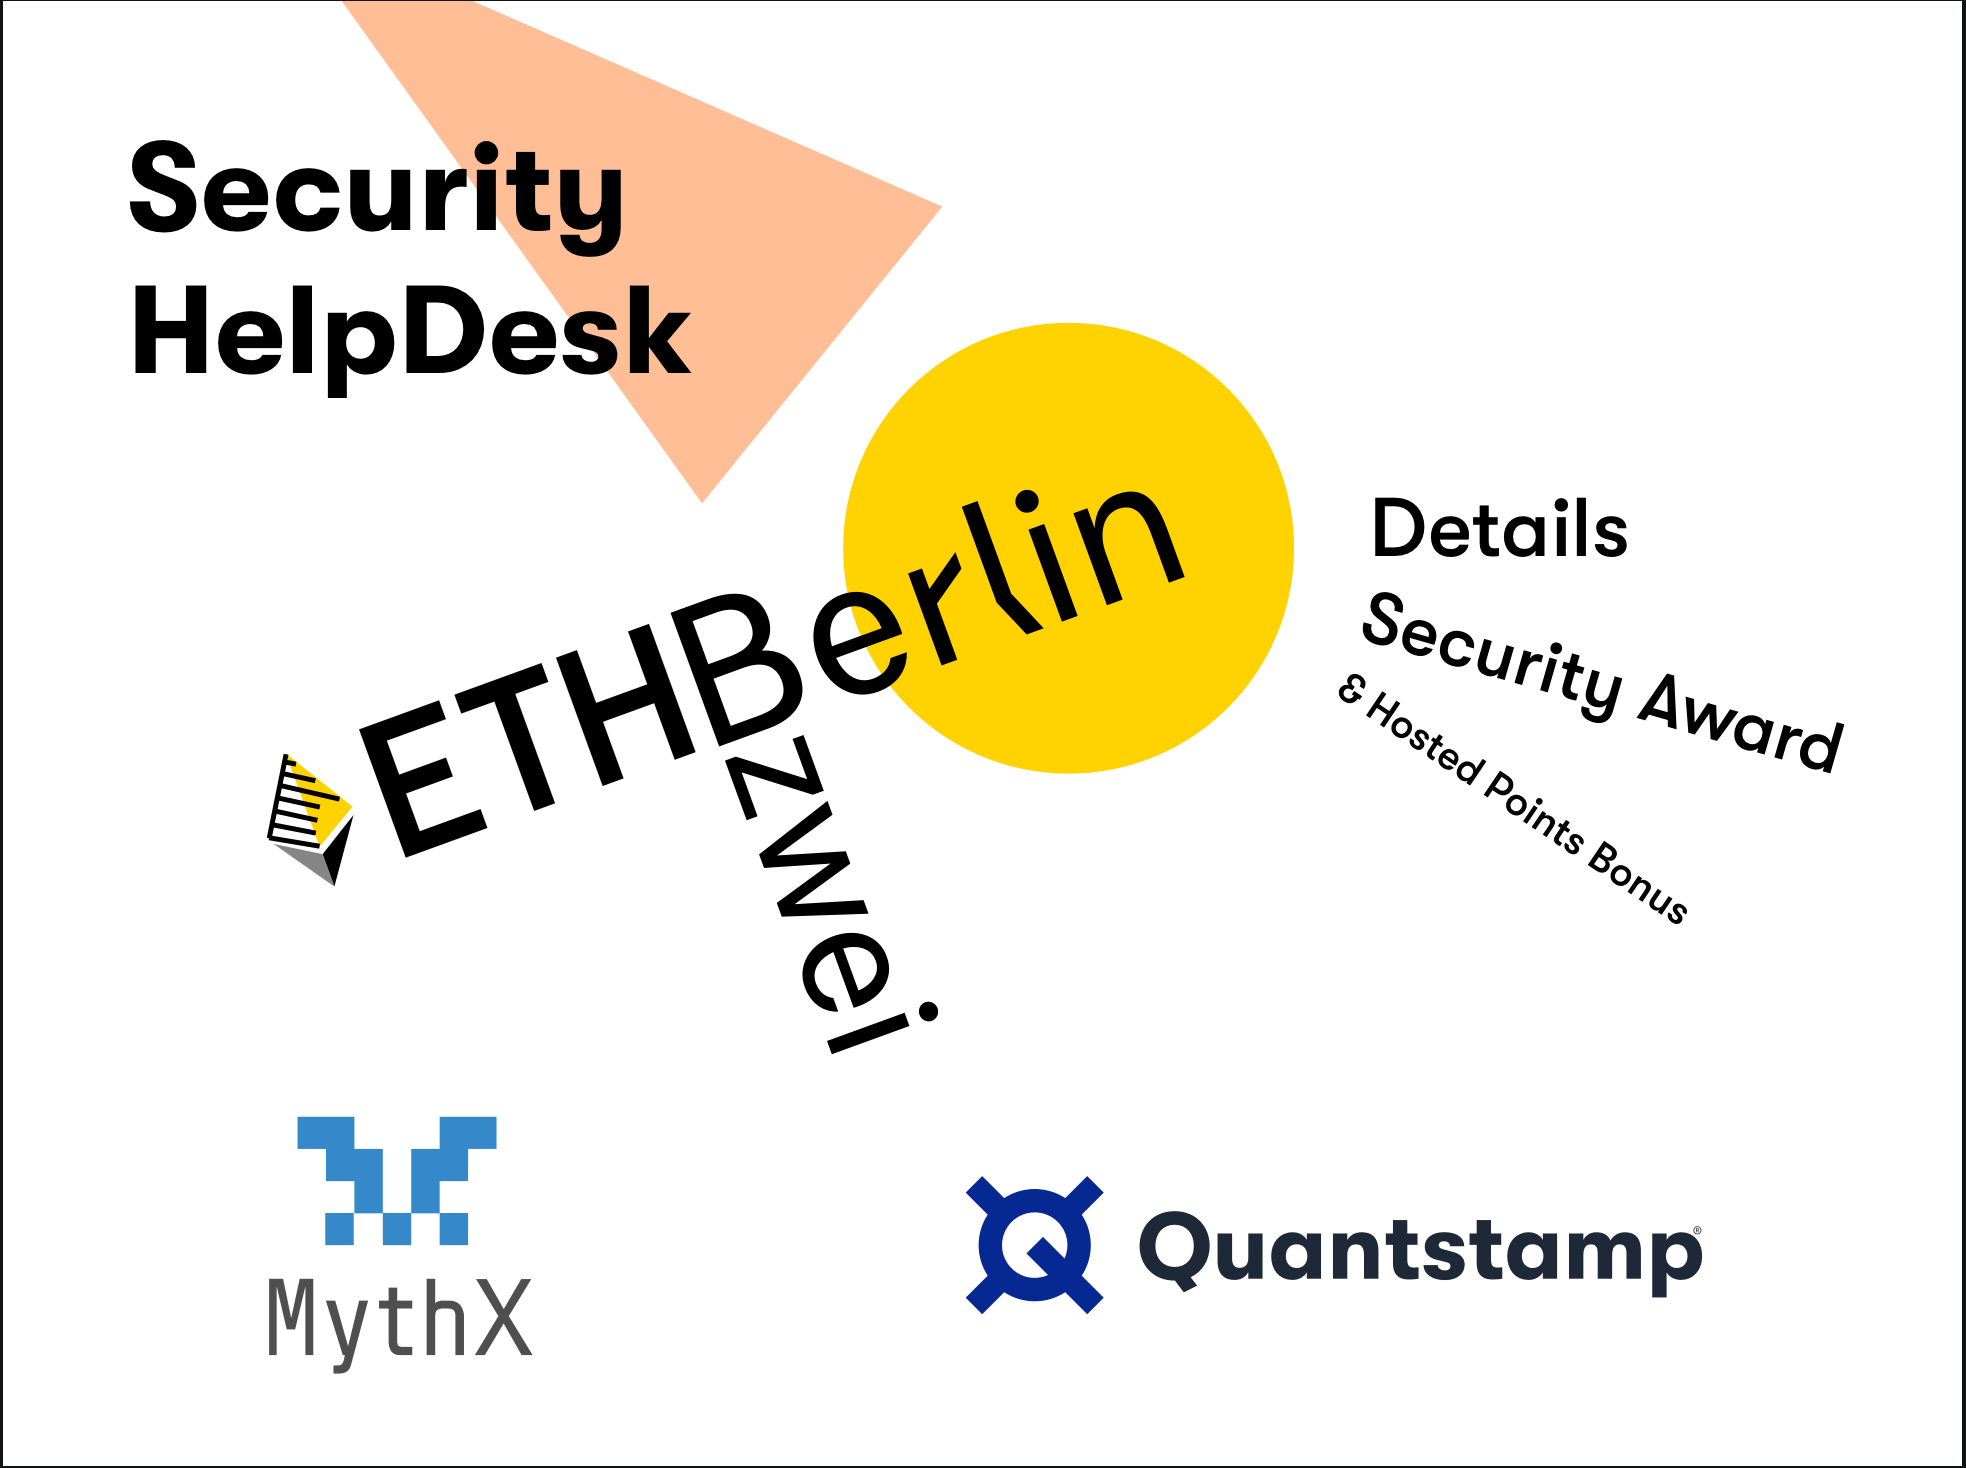 EthBerlin Security HelpDesk Details, Security Award & Hosted Points Bonus from Quantstamp + MythX